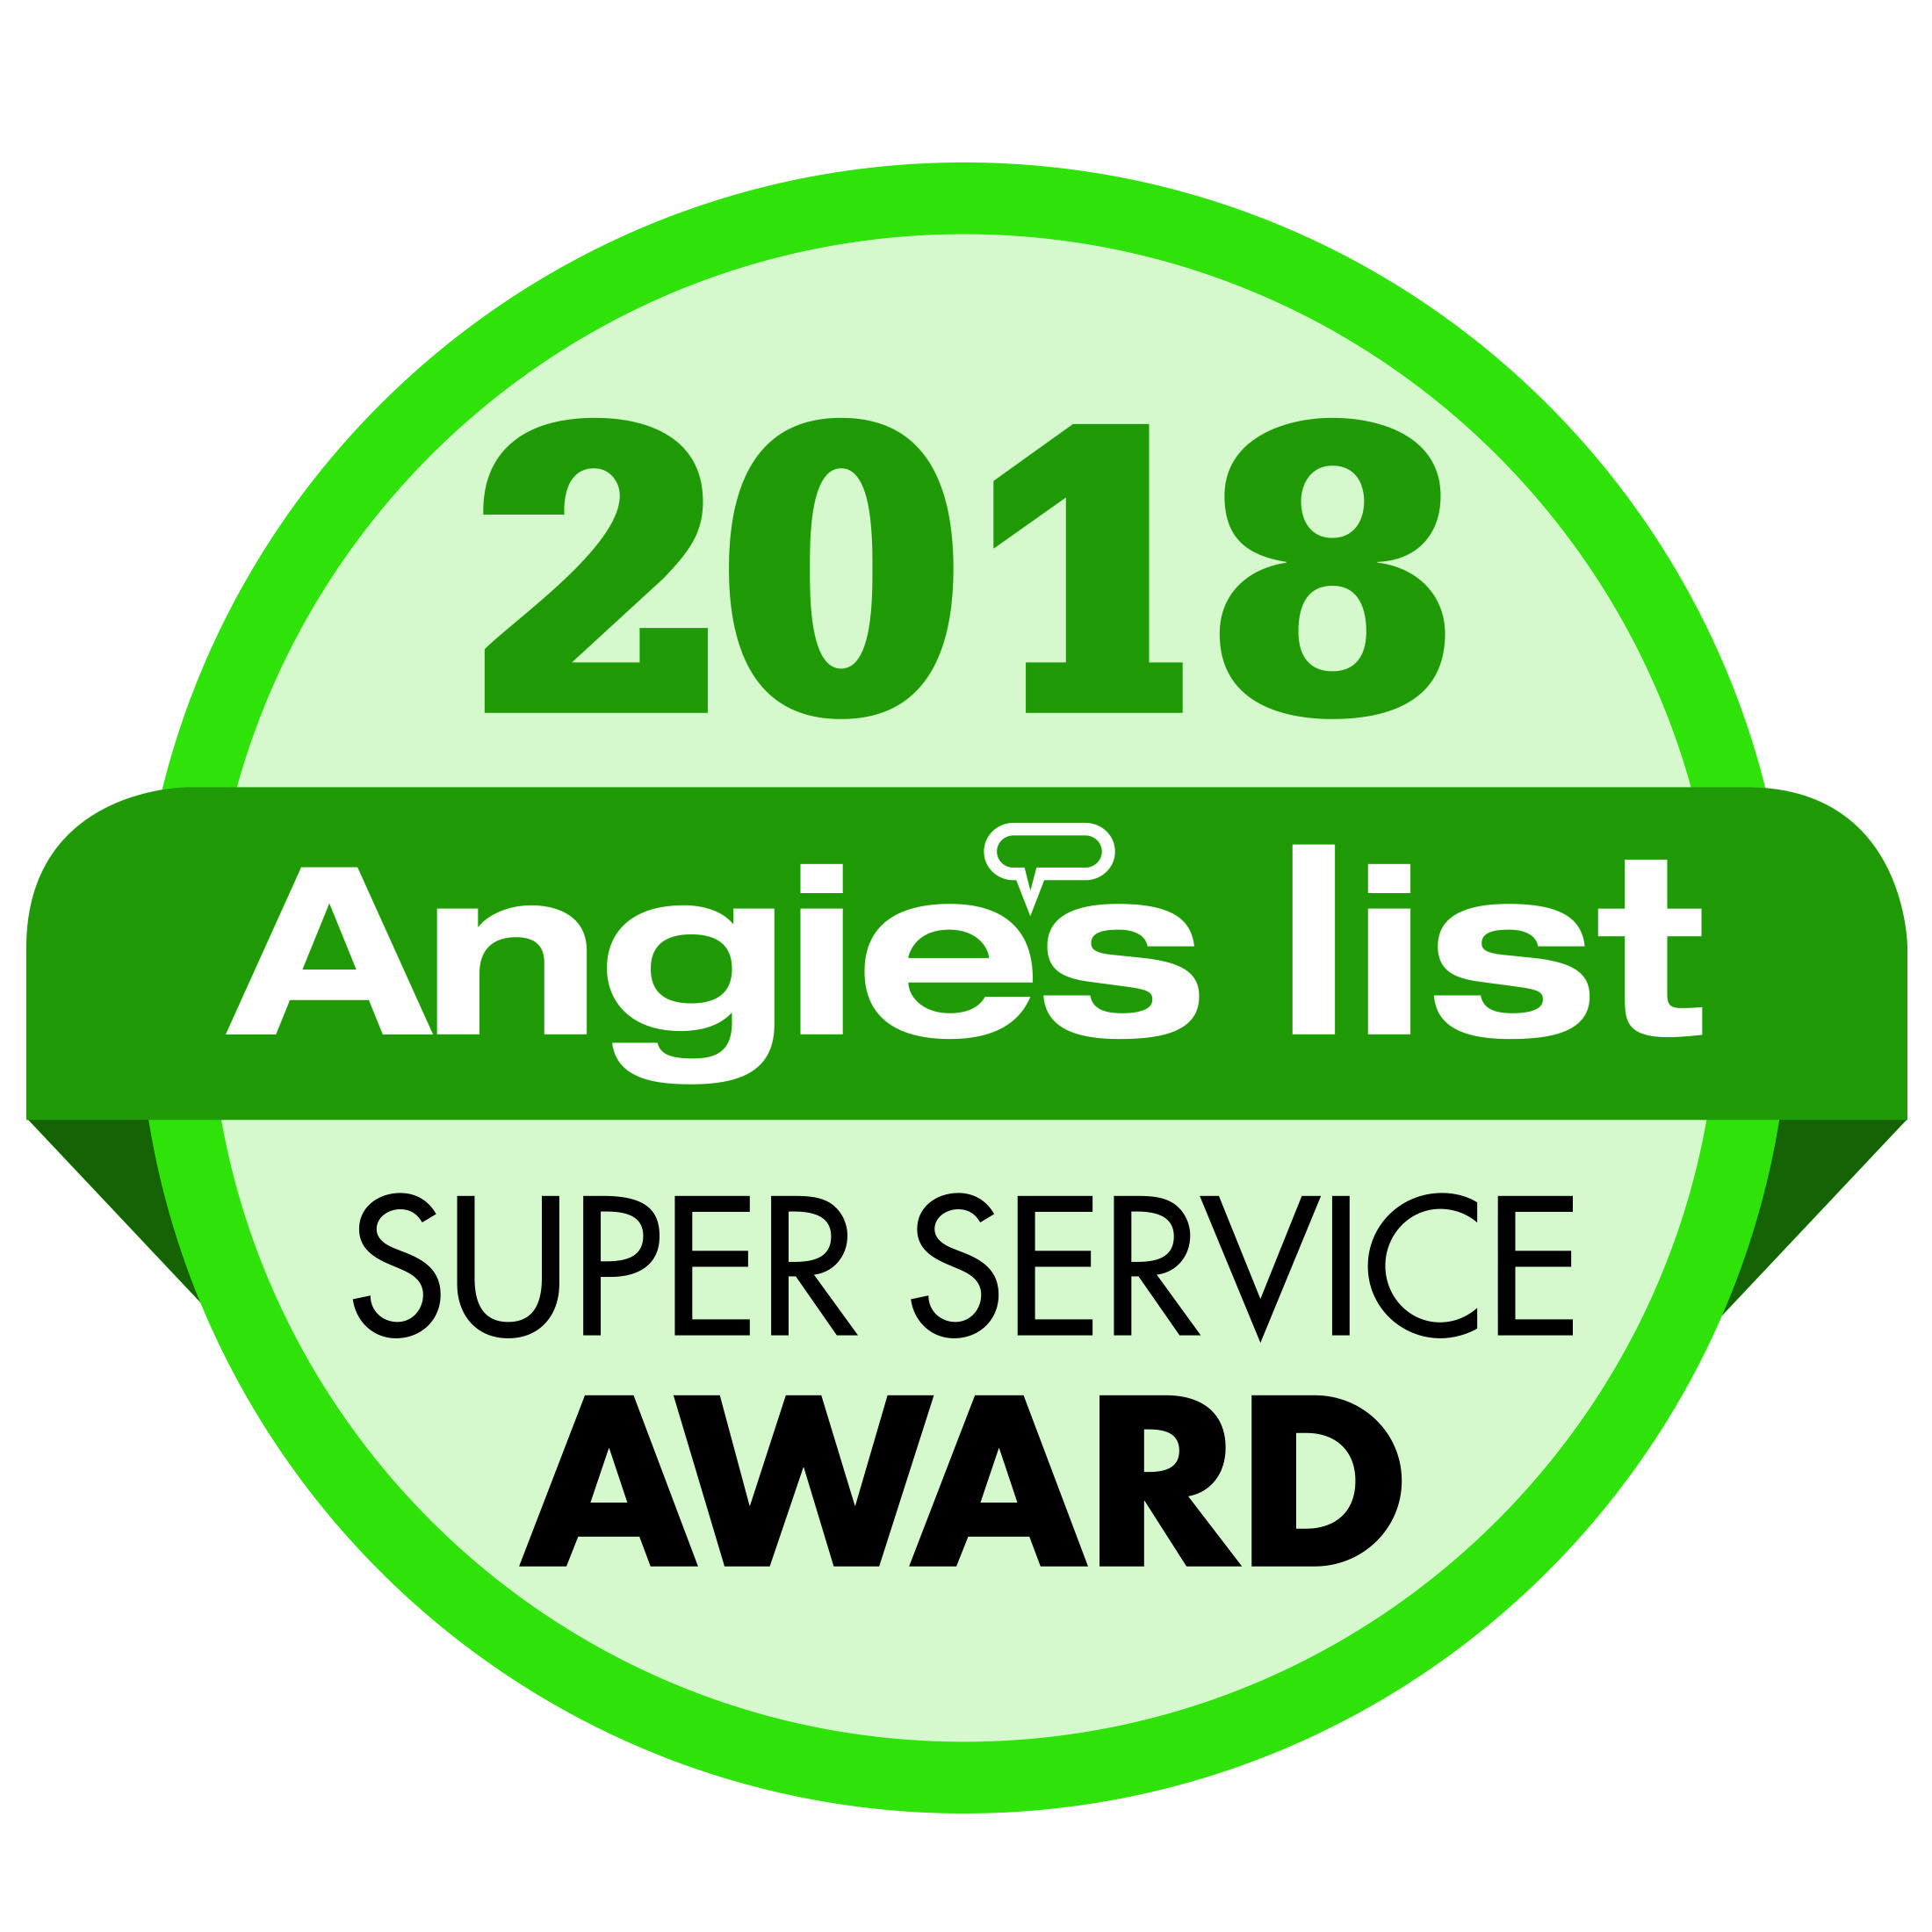 Hear what people are saying about us on Angies List!